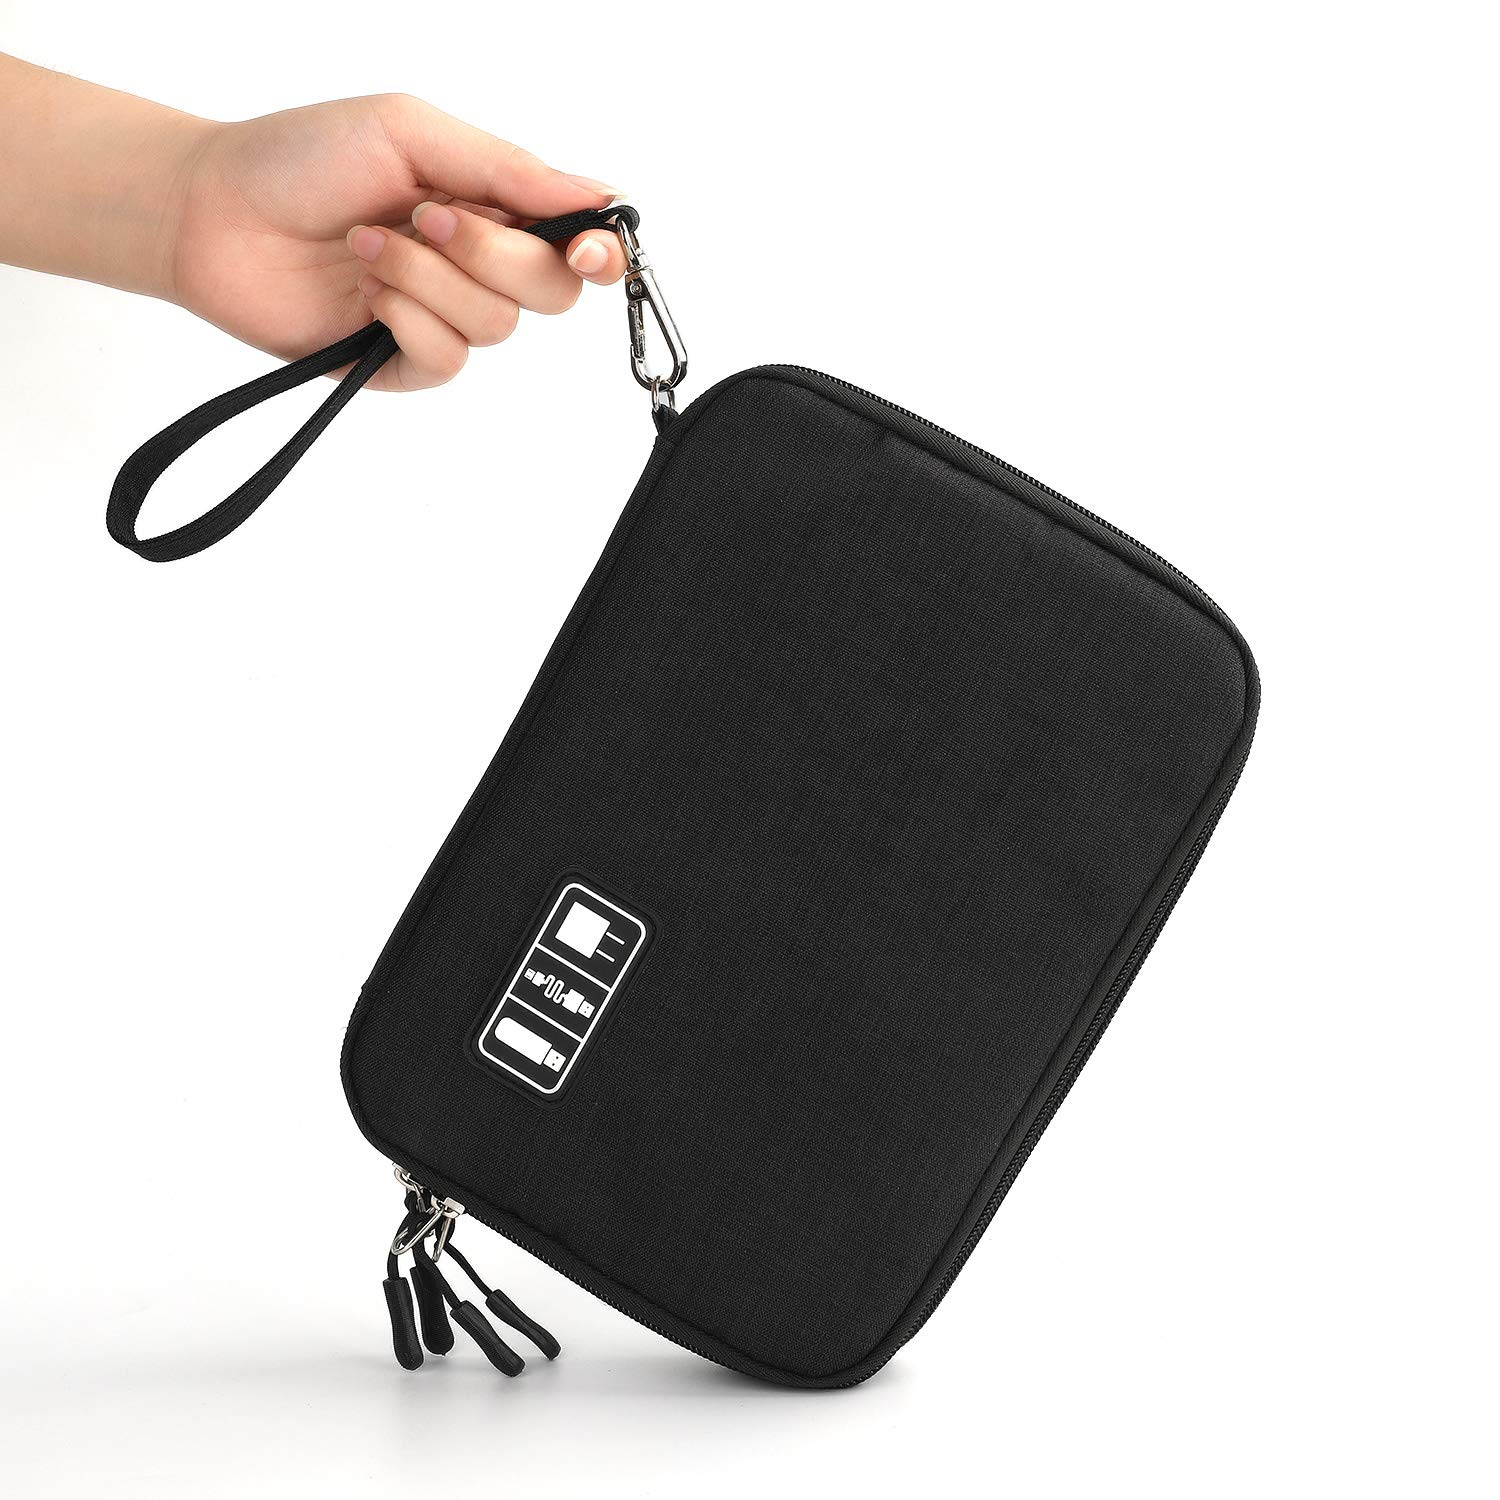 Electronics Organizer, Jelly Comb Electronic Accessories Cable Organizer Bag Waterproof Travel Cable Storage Bag for Charging Cable, Power Bank, iPad (Up to 11'' and More-Large(All Black) by Jelly Comb (Image #7)